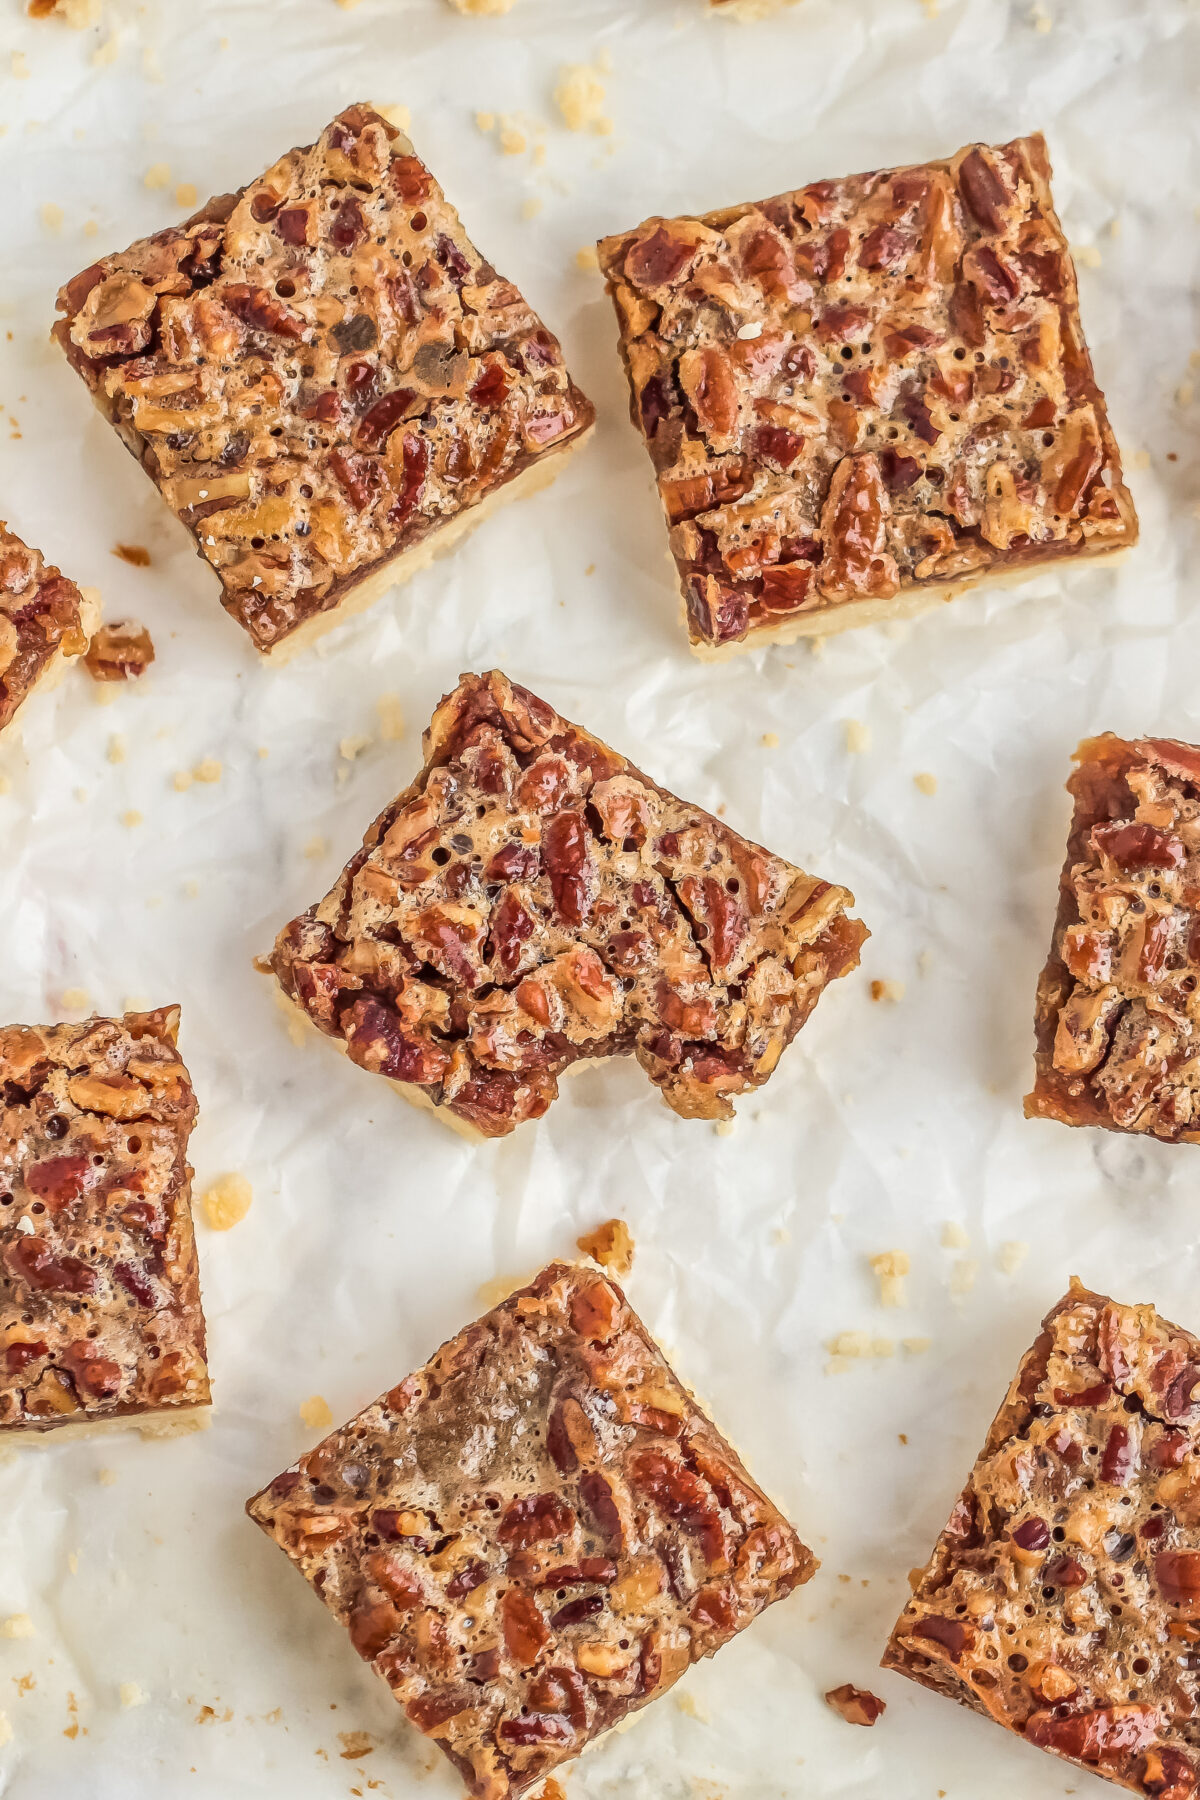 This recipe for pecan pie bars is a huge crowd pleaser. They're deliciously sweet & salty with an easy shortbread crust. Plus NO Corn Syrup!